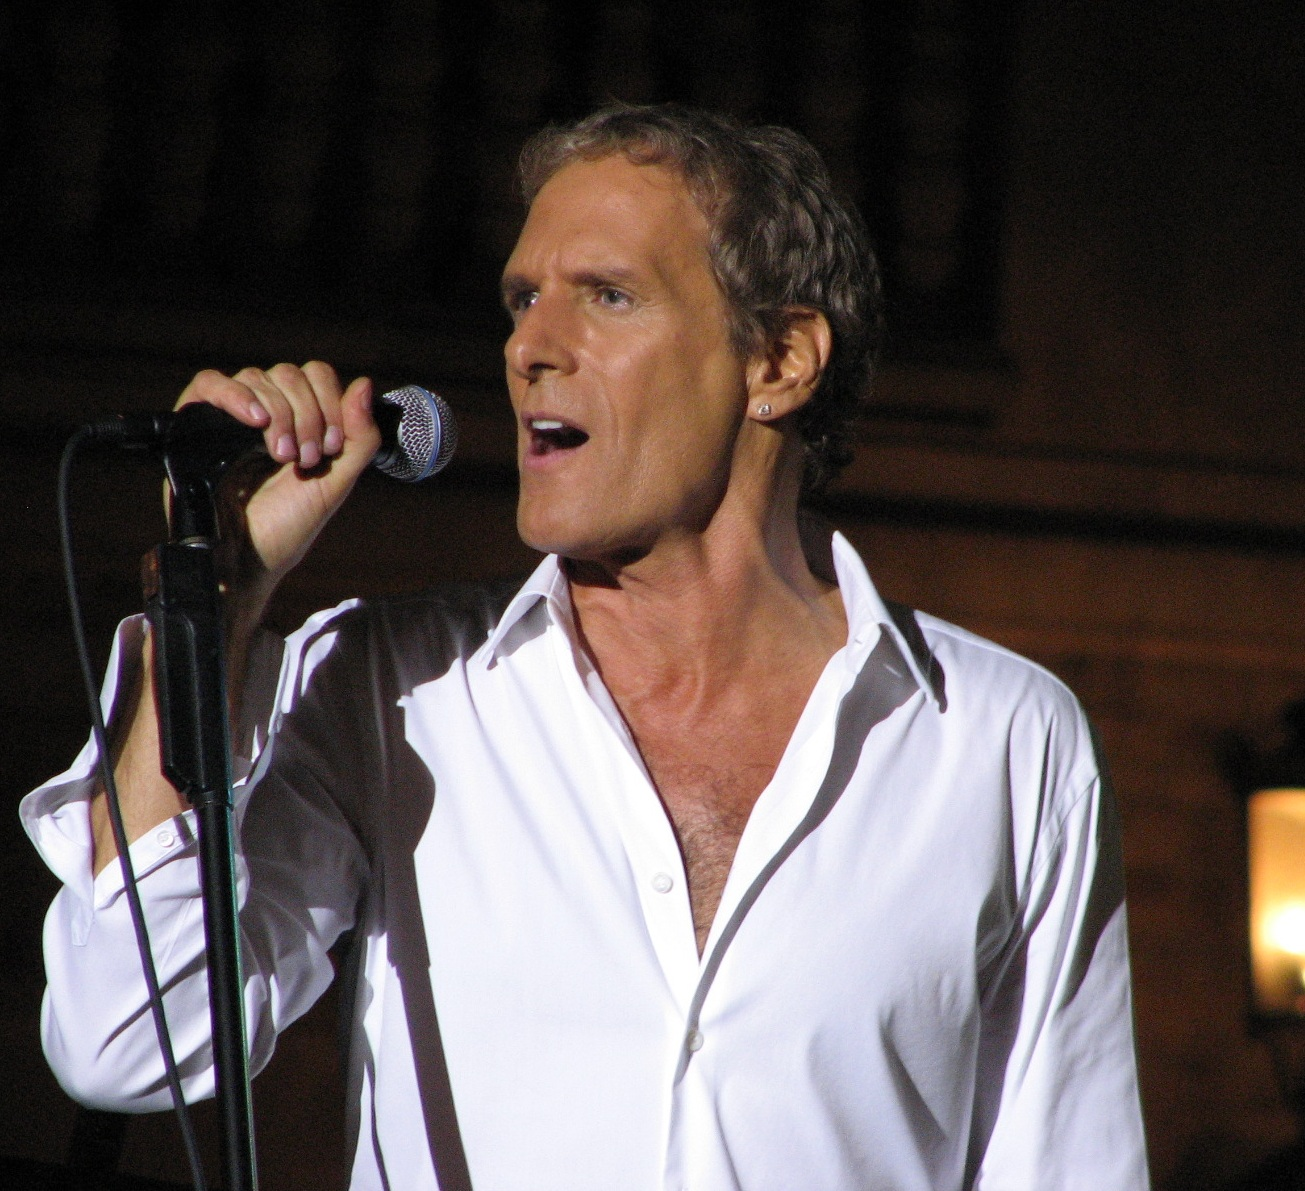 Michael Bolton Performs At Concert Minutes After Dancing w